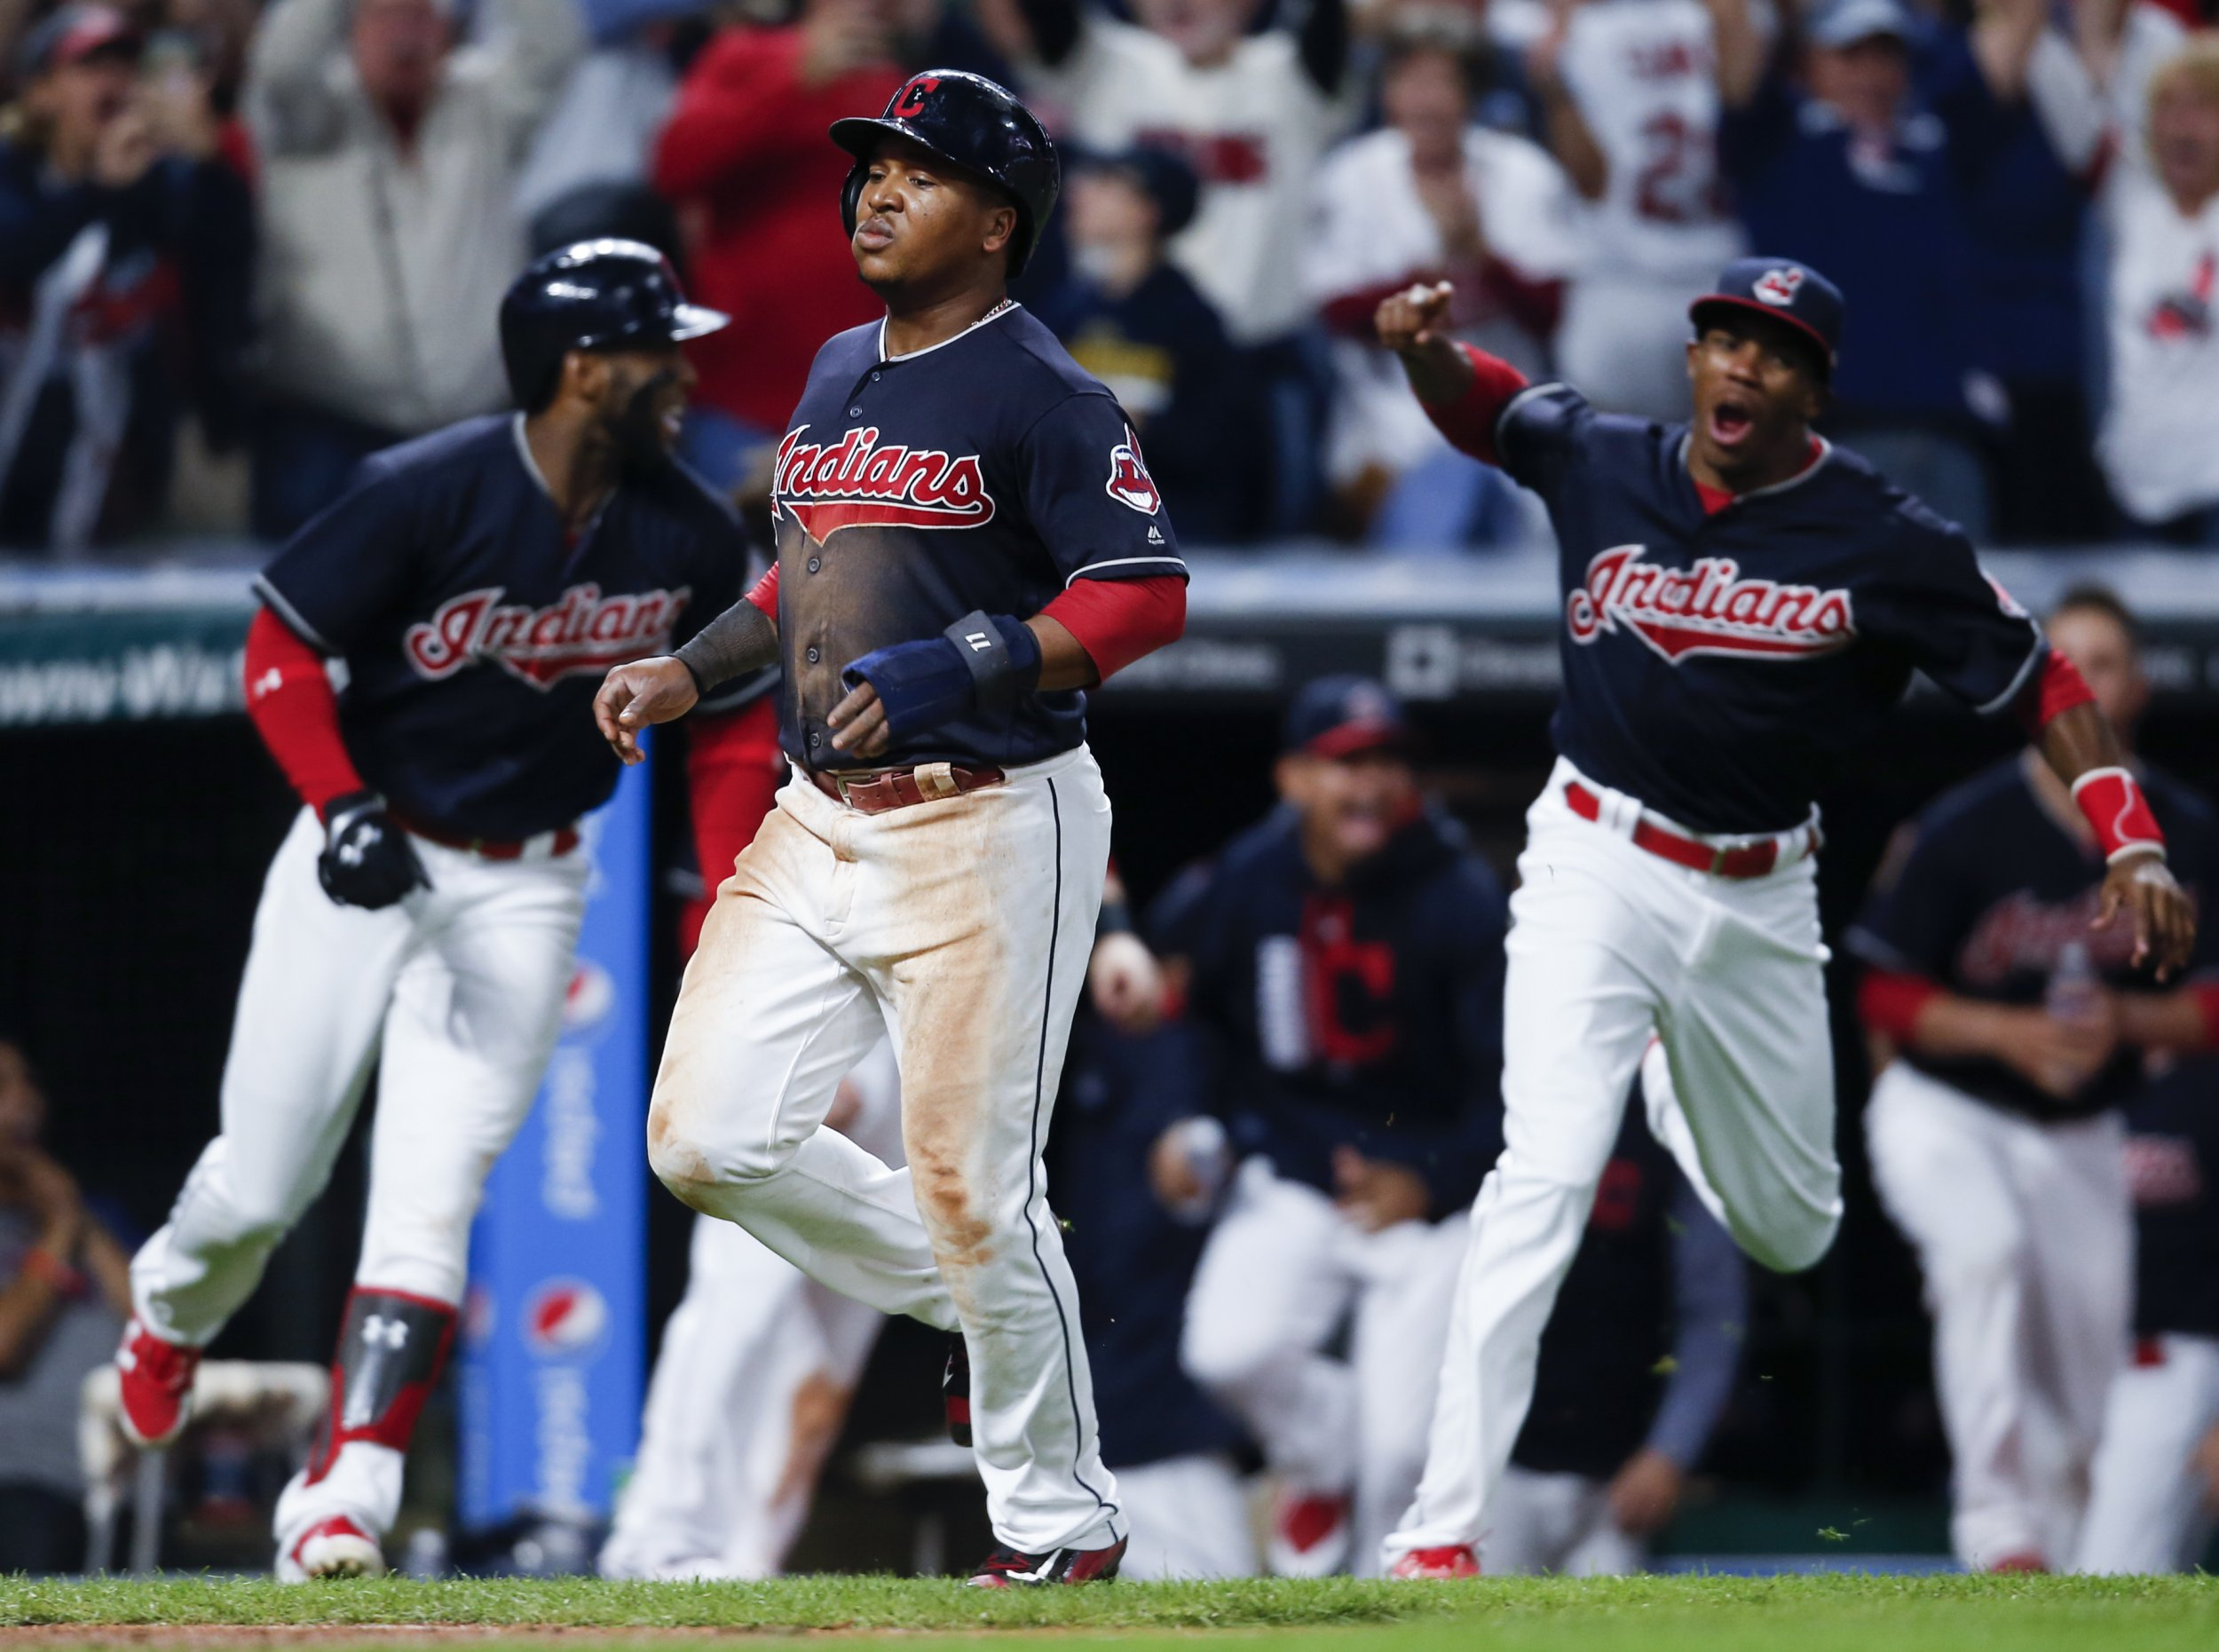 Jose Ramirez #11 of the Cleveland Indians scores the game winning run on a single by Jay Bruce #32 against the Kansas City Royals at Progressive Field, Cleveland, September 14.